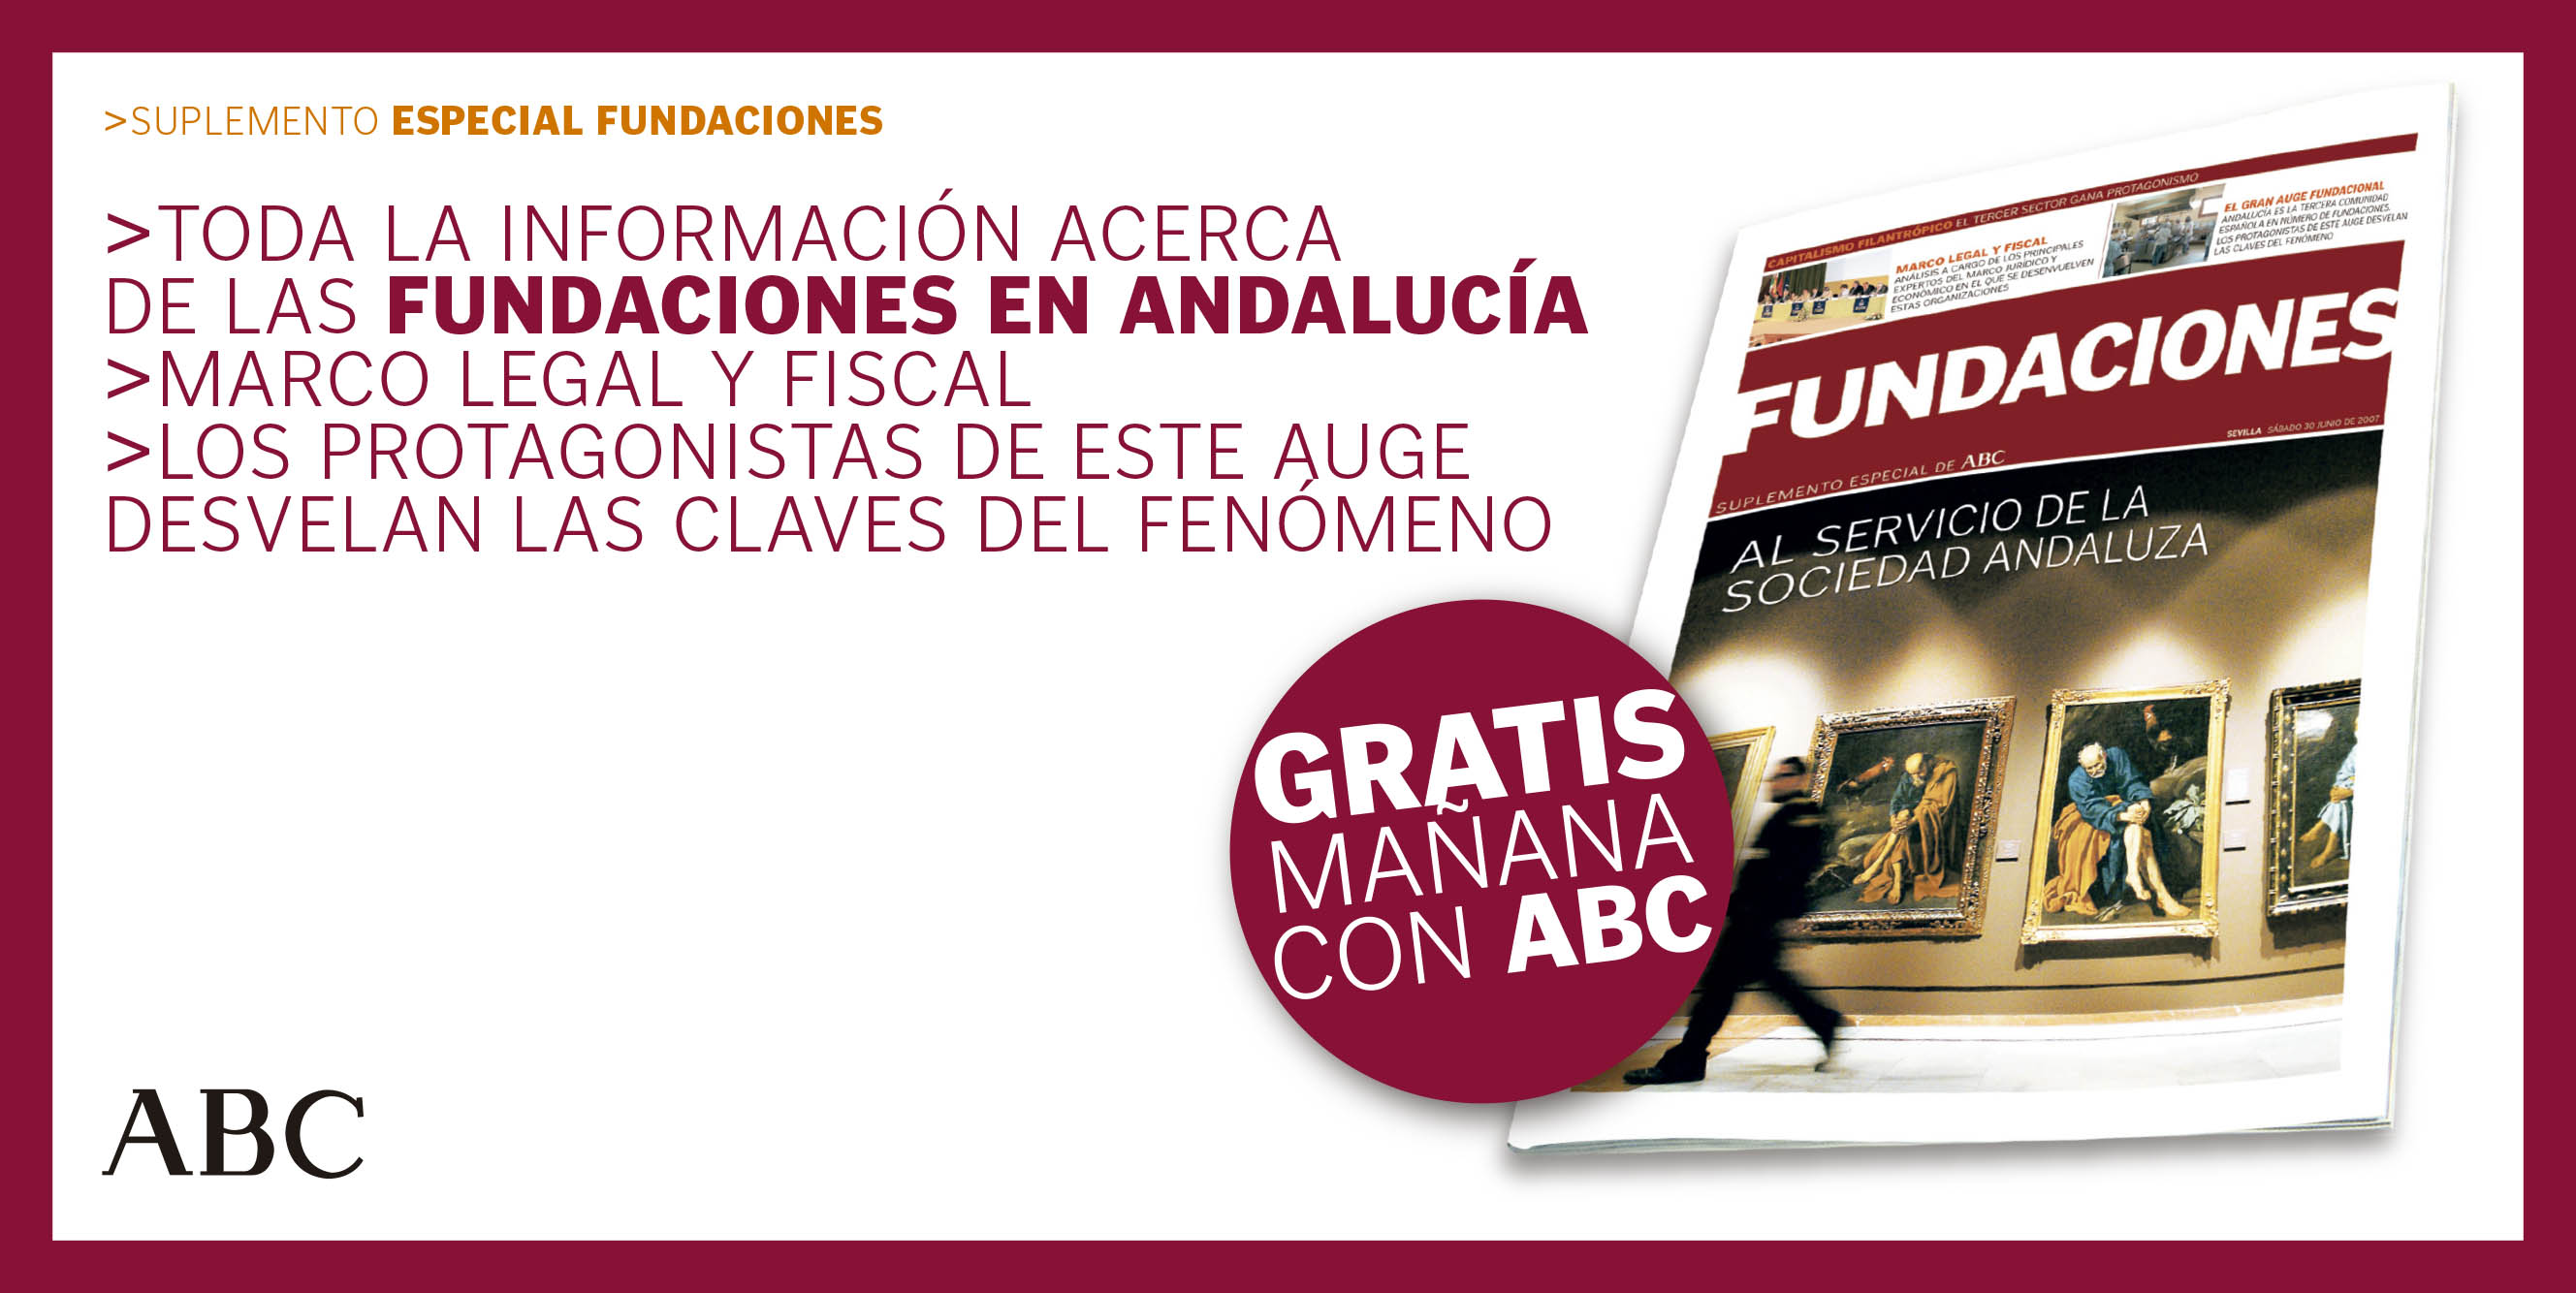 Especial Fundaciones – ABC | jun 2007